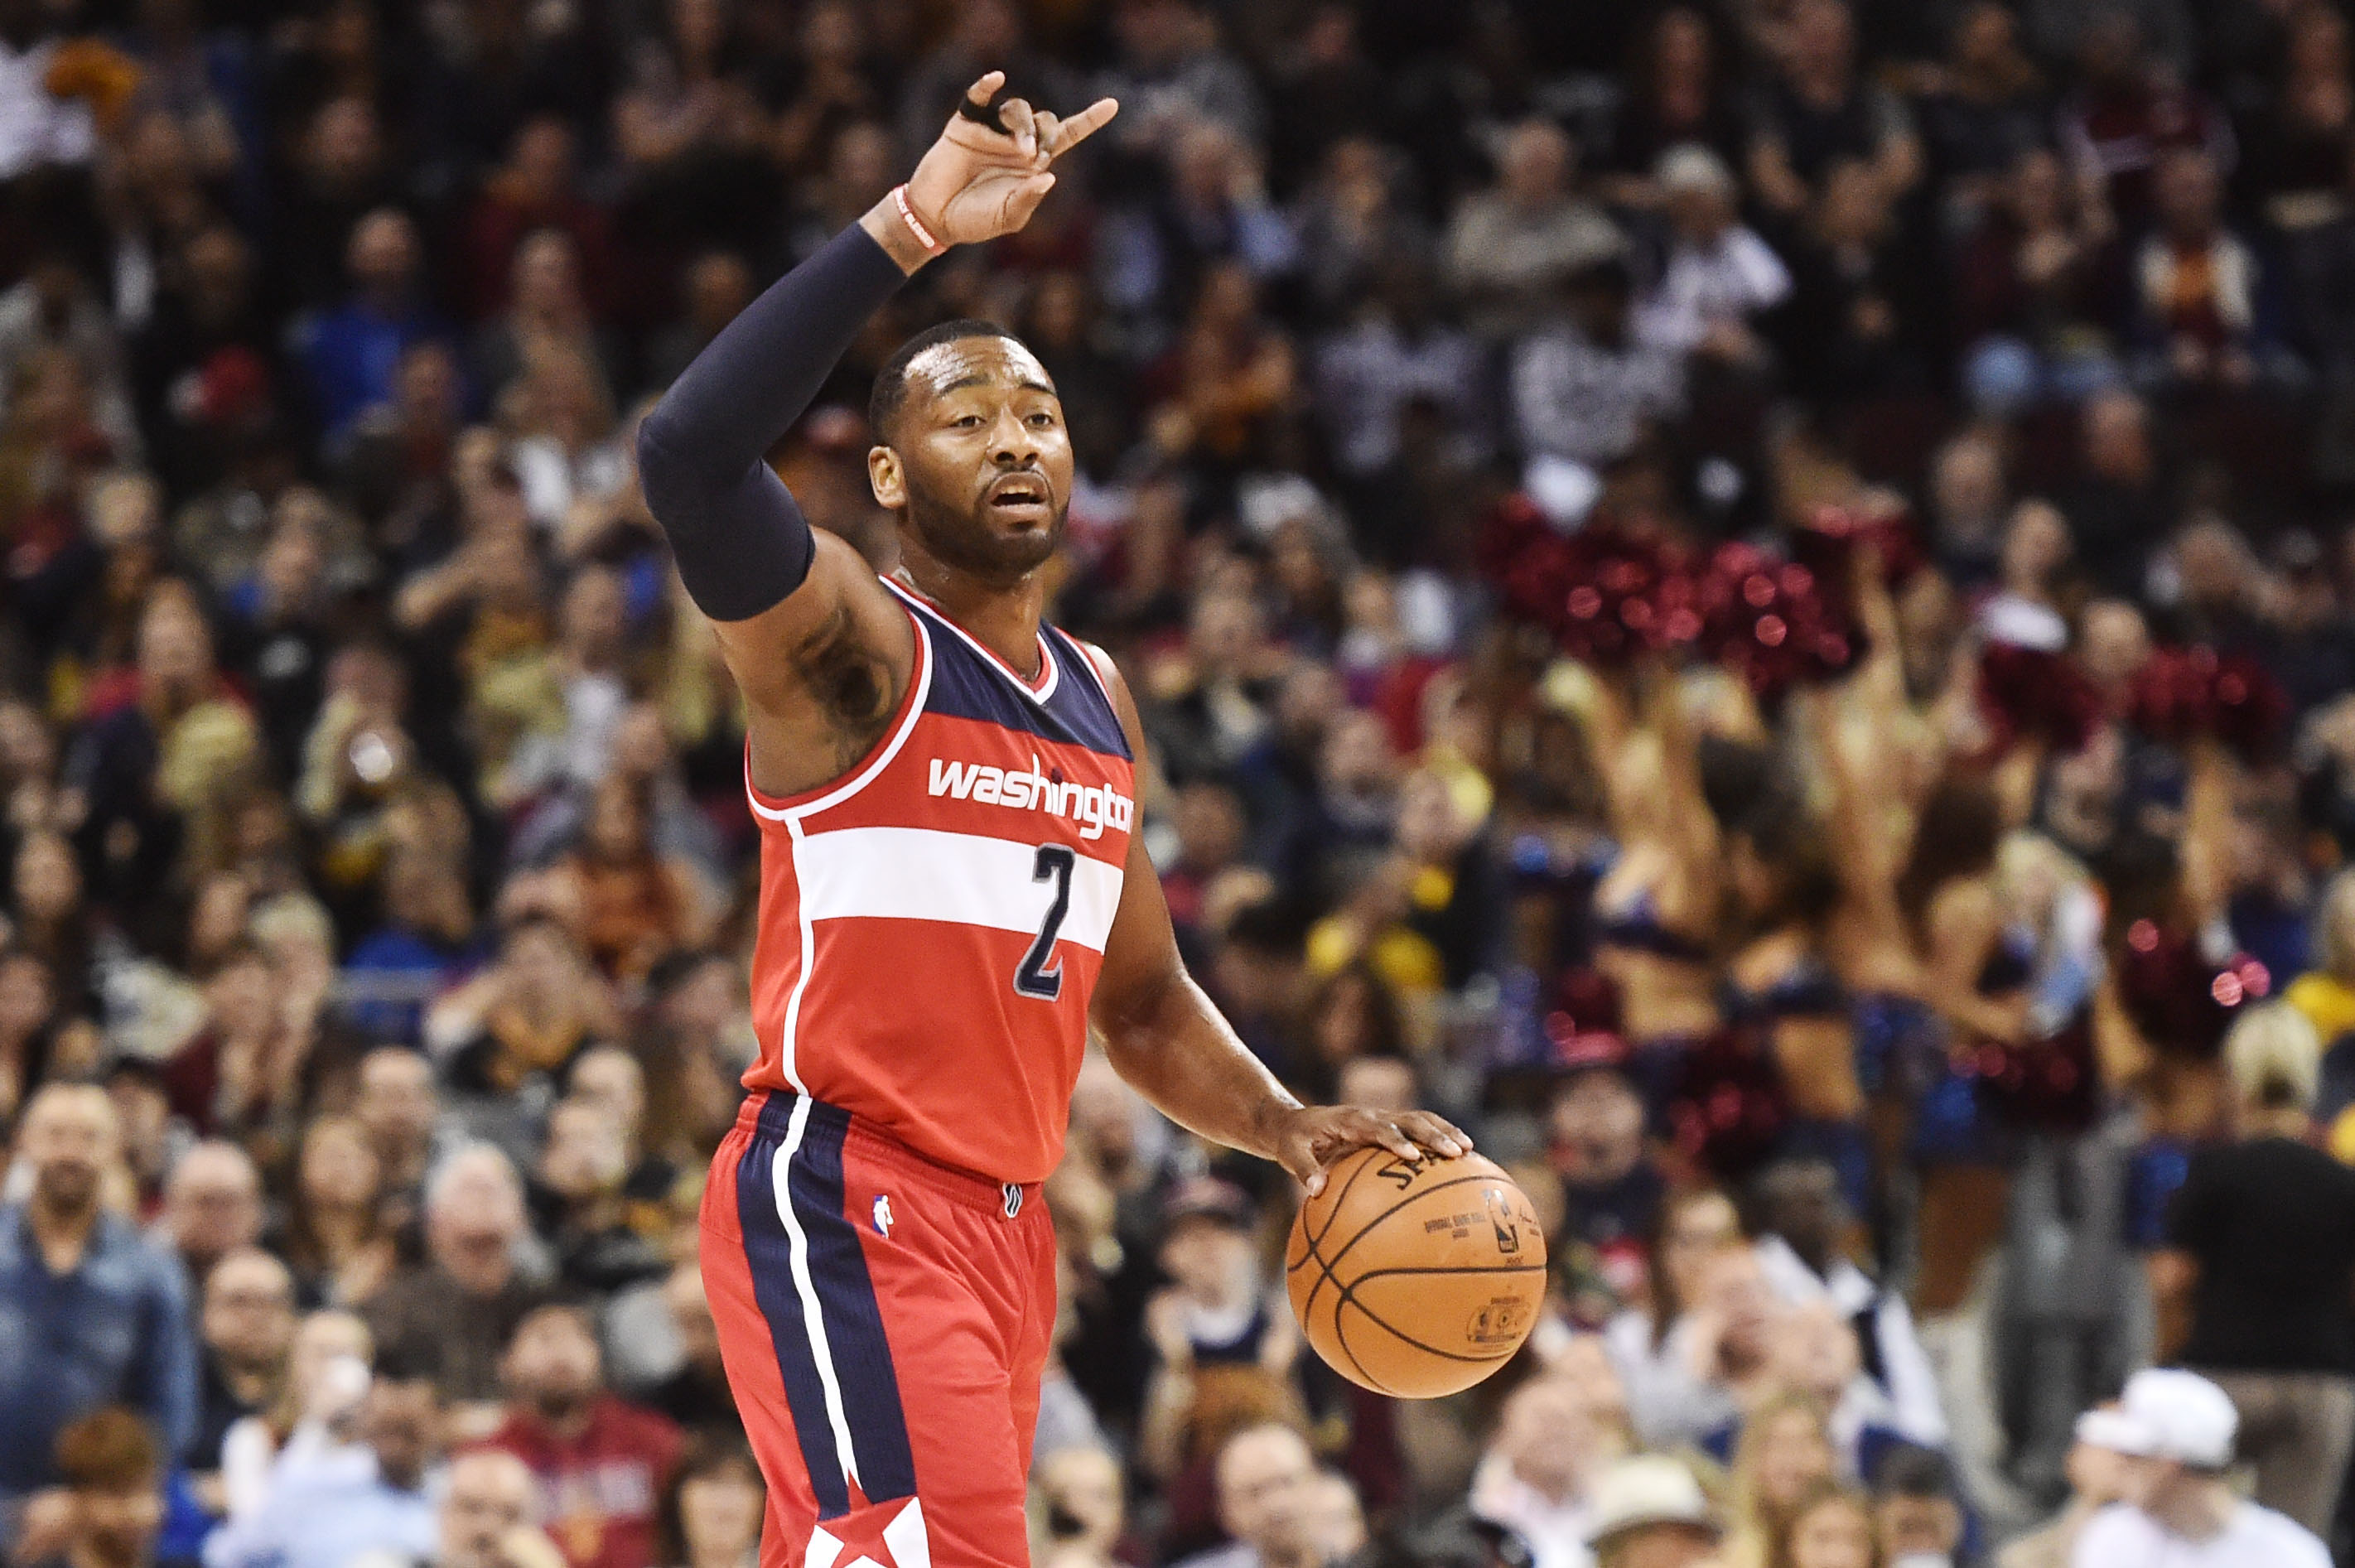 9970943-nba-washington-wizards-at-cleveland-cavaliers